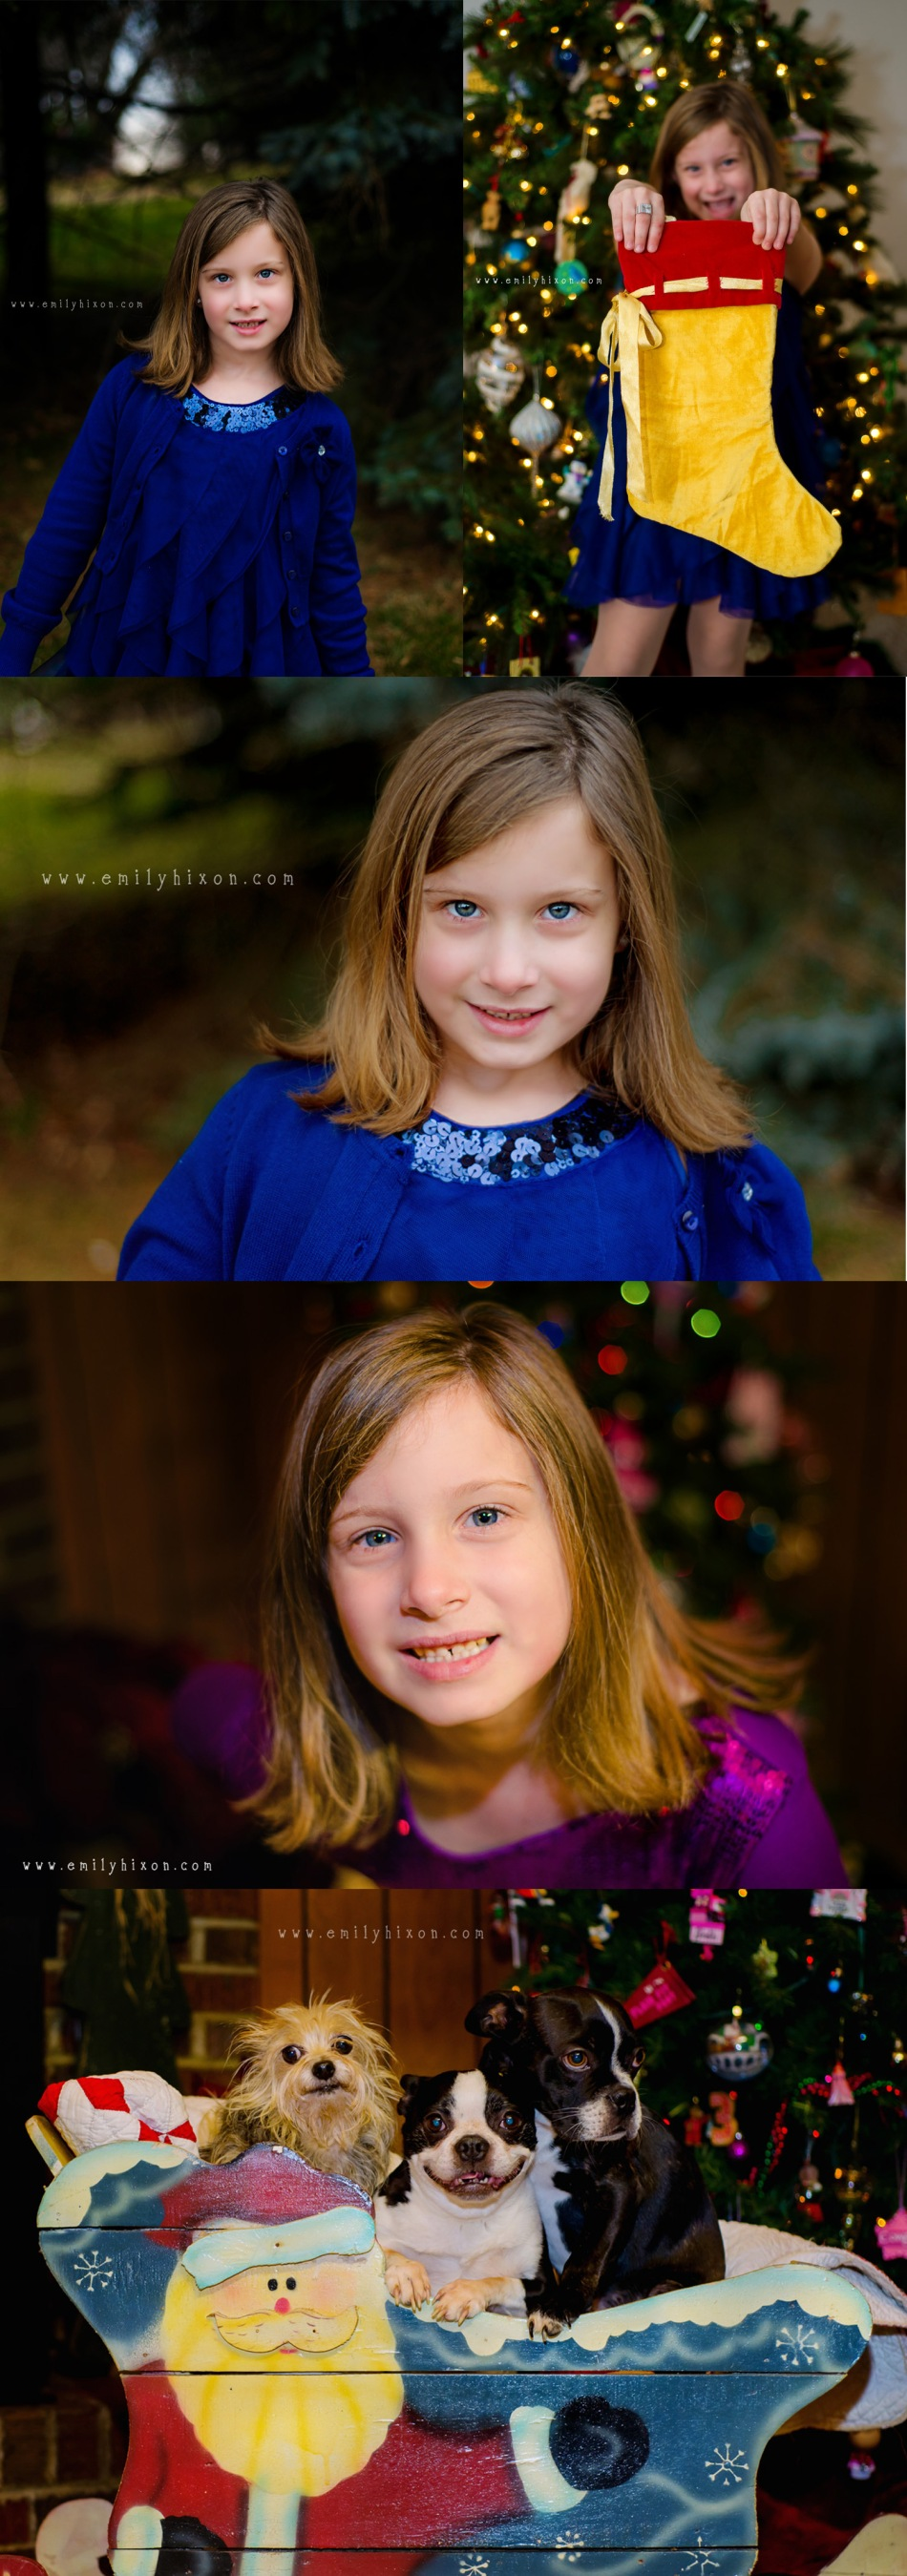 child-portrait-photography-pittsburgh-EmilyHixonPhotography